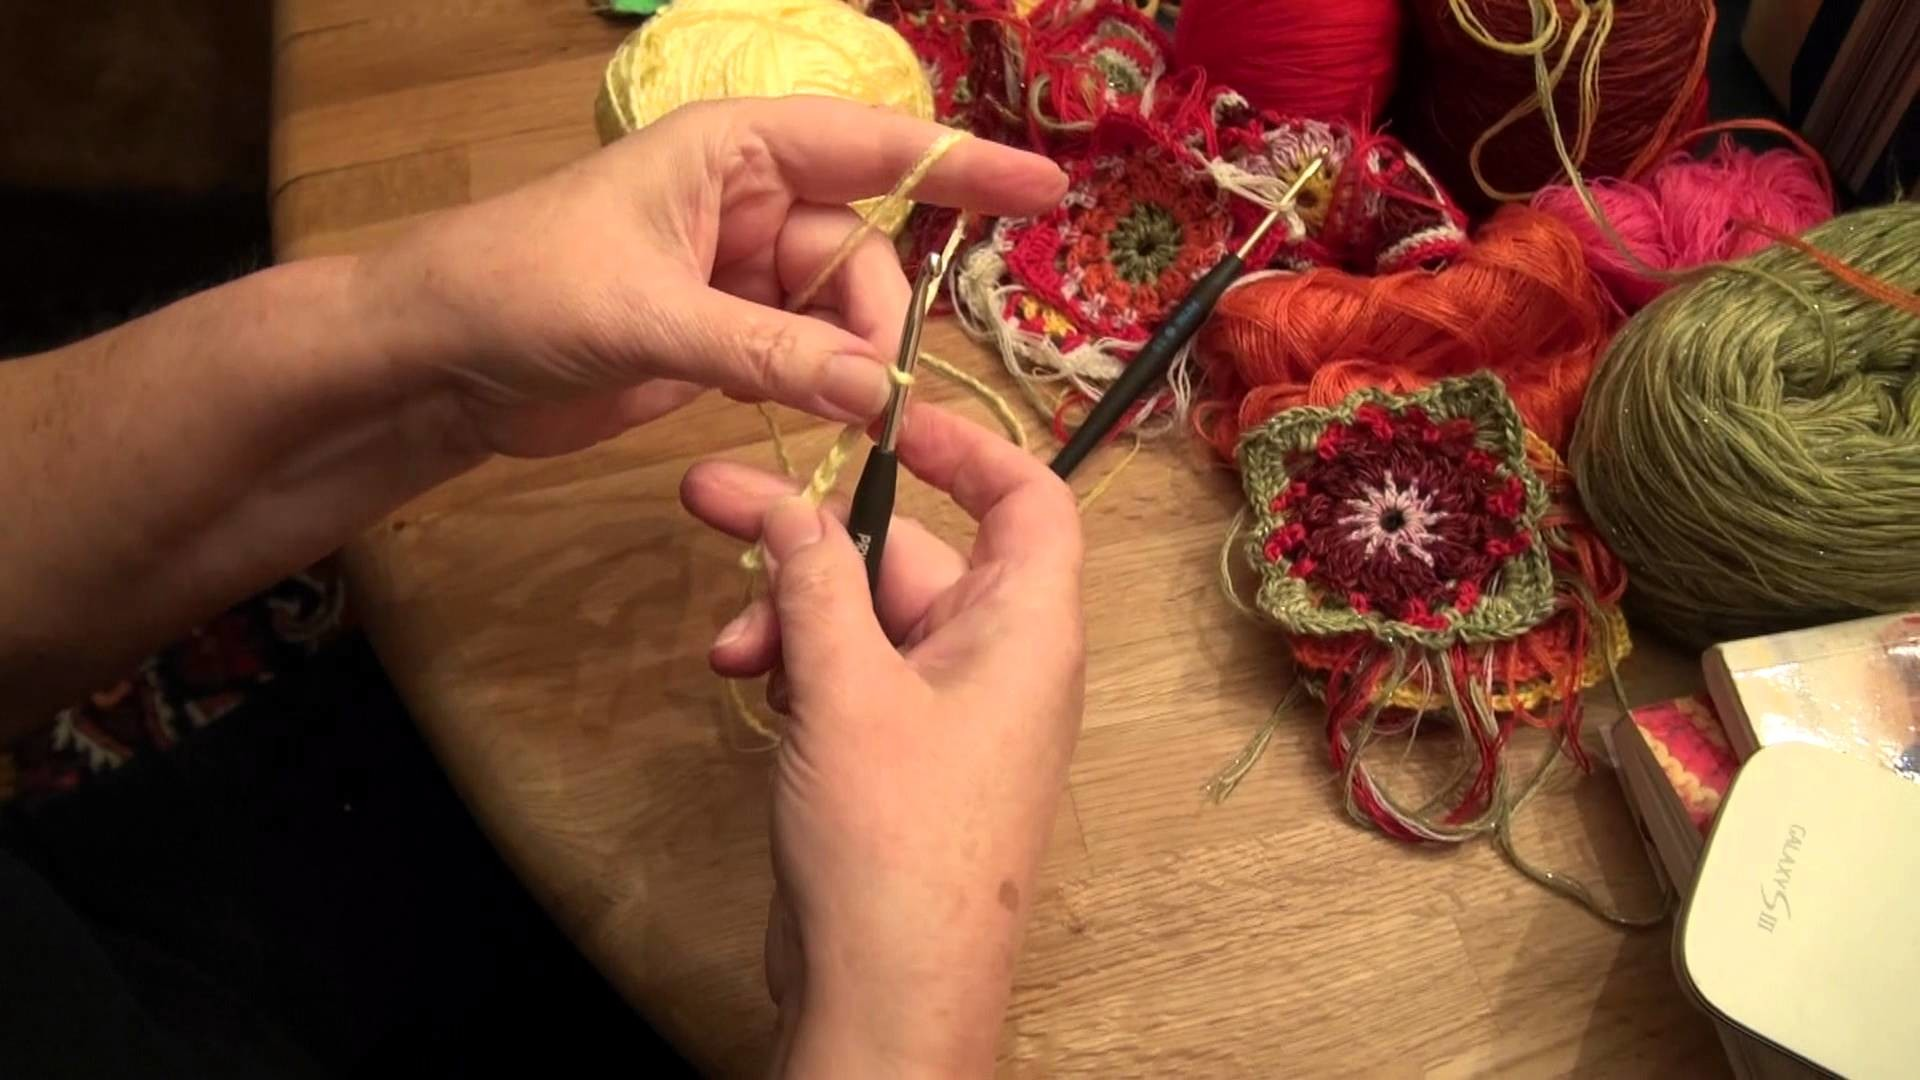 Crochet with LANDDERFEEN - How to - start crochet - tutorial - beginning